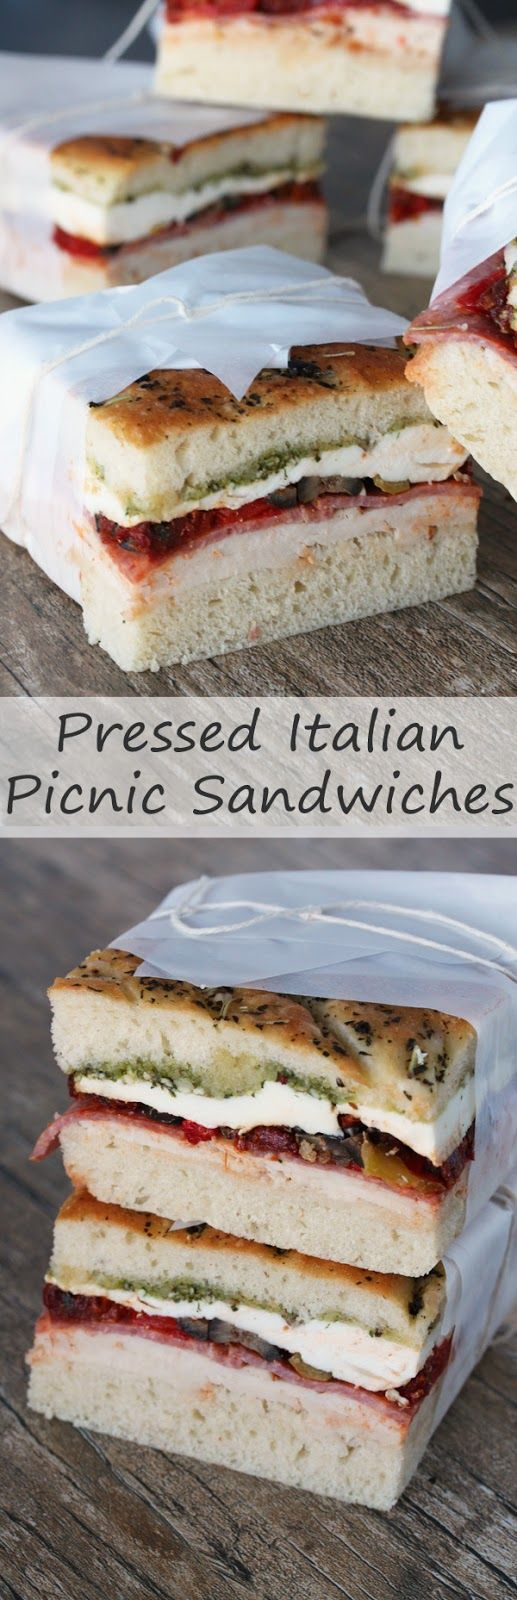 Pressed Italian Picnic Sandwiches with Walnut Pesto. Perfect for picnics and parties